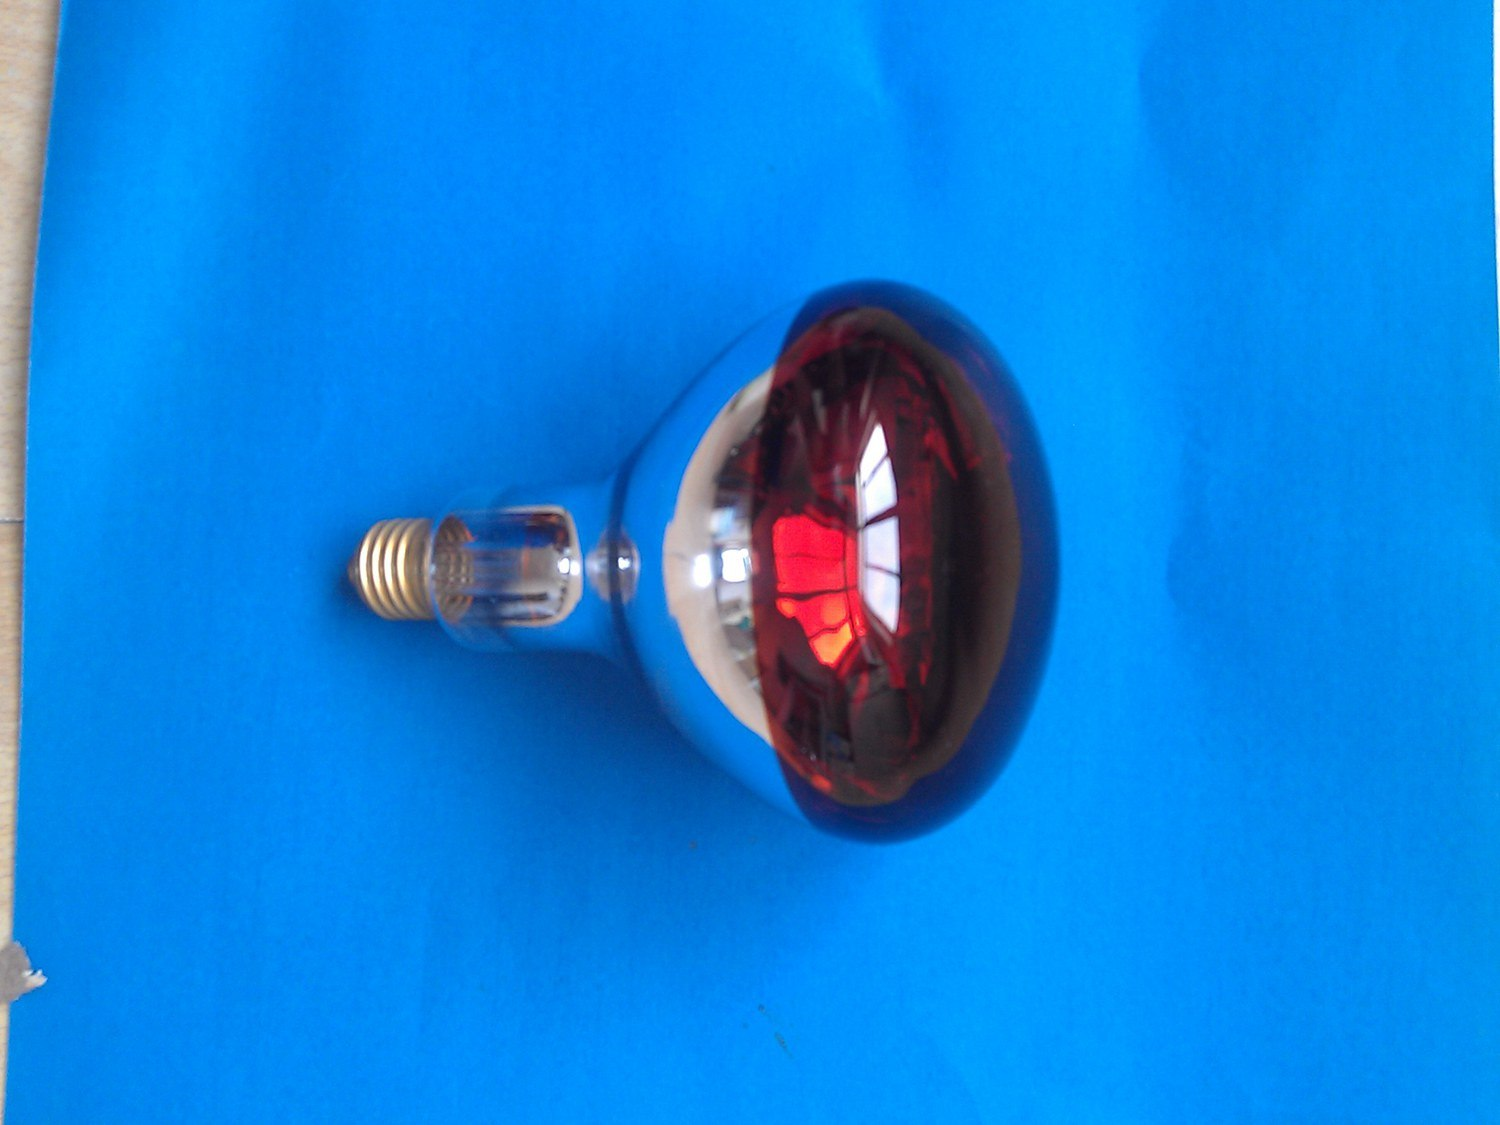 Bathroom infrared heat light - China Ion Red Warm Light Bathroom Infrared Heat Bulb China Bathroom Heat Lamp Health Lamp